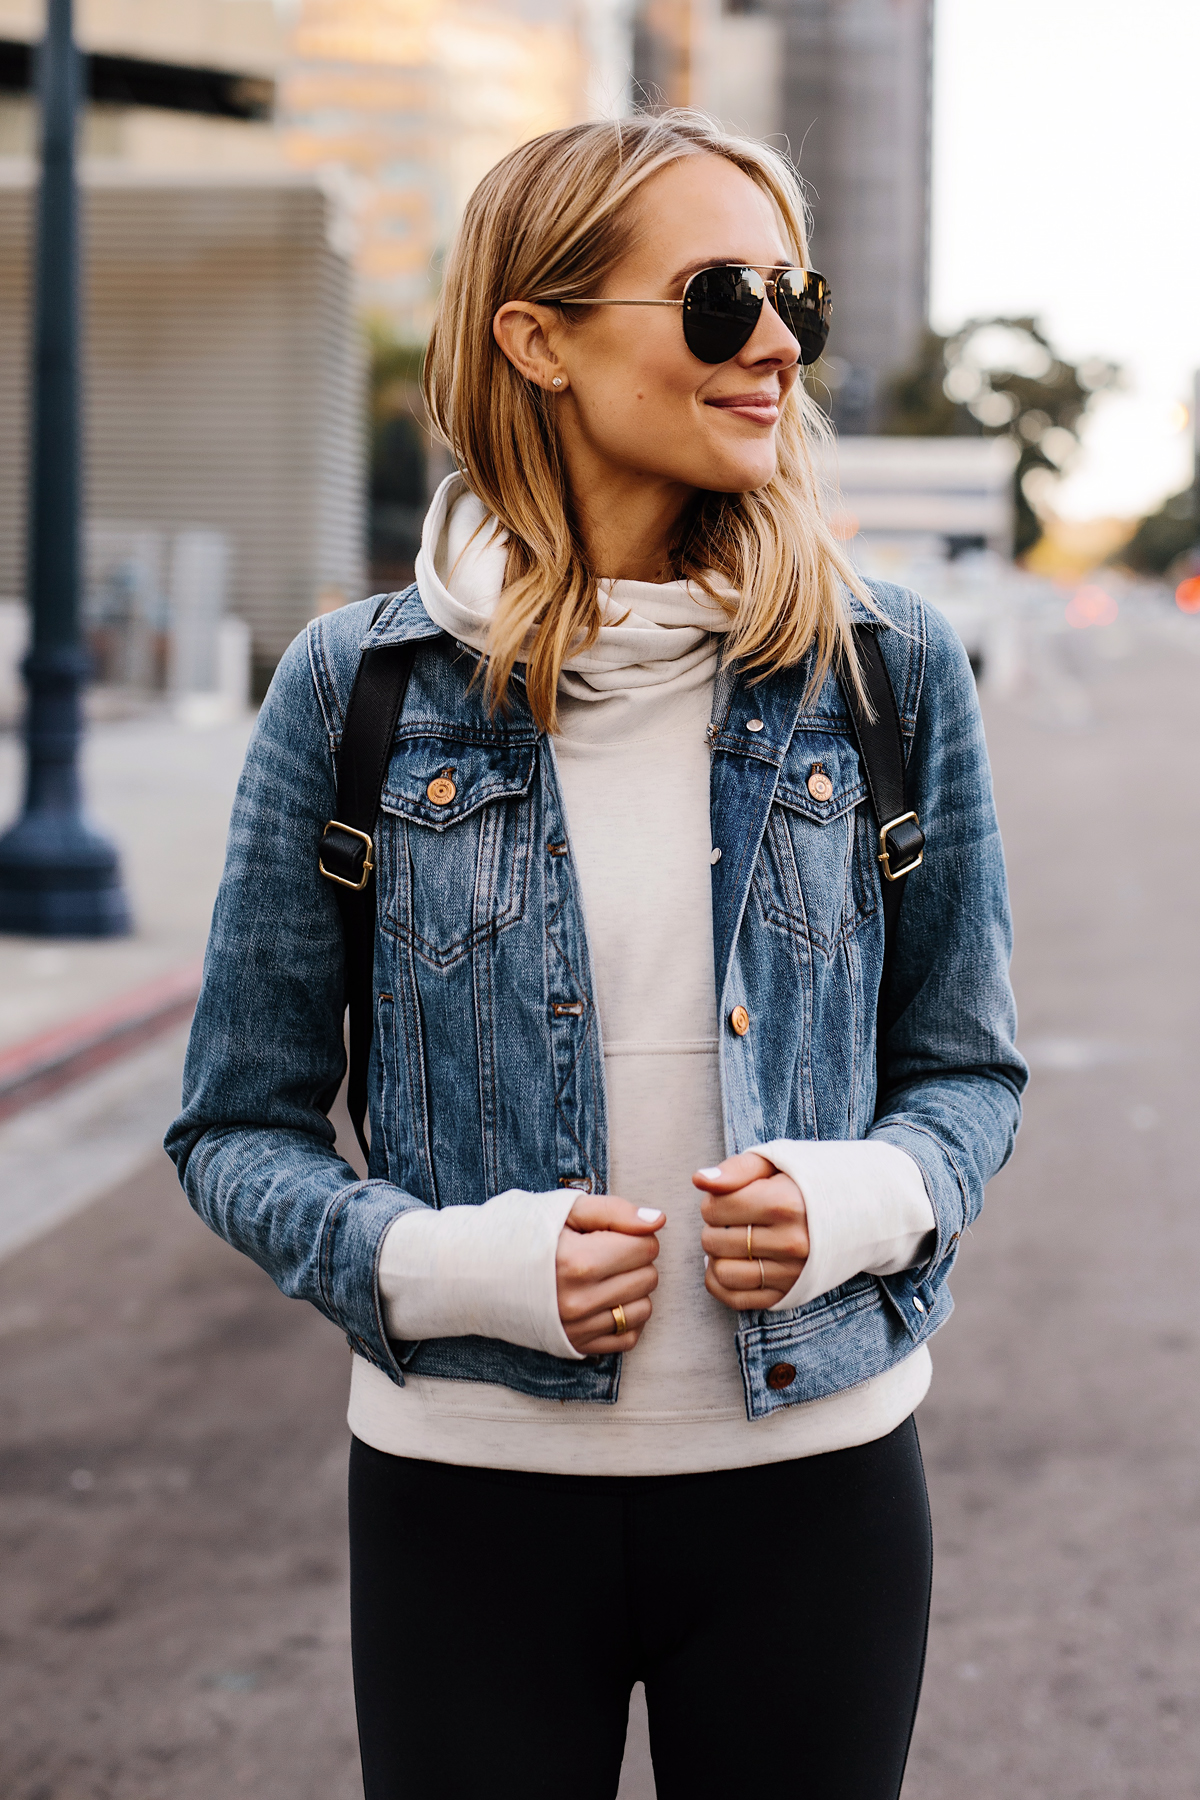 Fashion Jackson Athleisure Outfit Wearing Denim Jacket Grey Sweatshirt Black Leggings Aviator Sunglasses Fashion Jackson San Diego Fashion Blogger Street Style